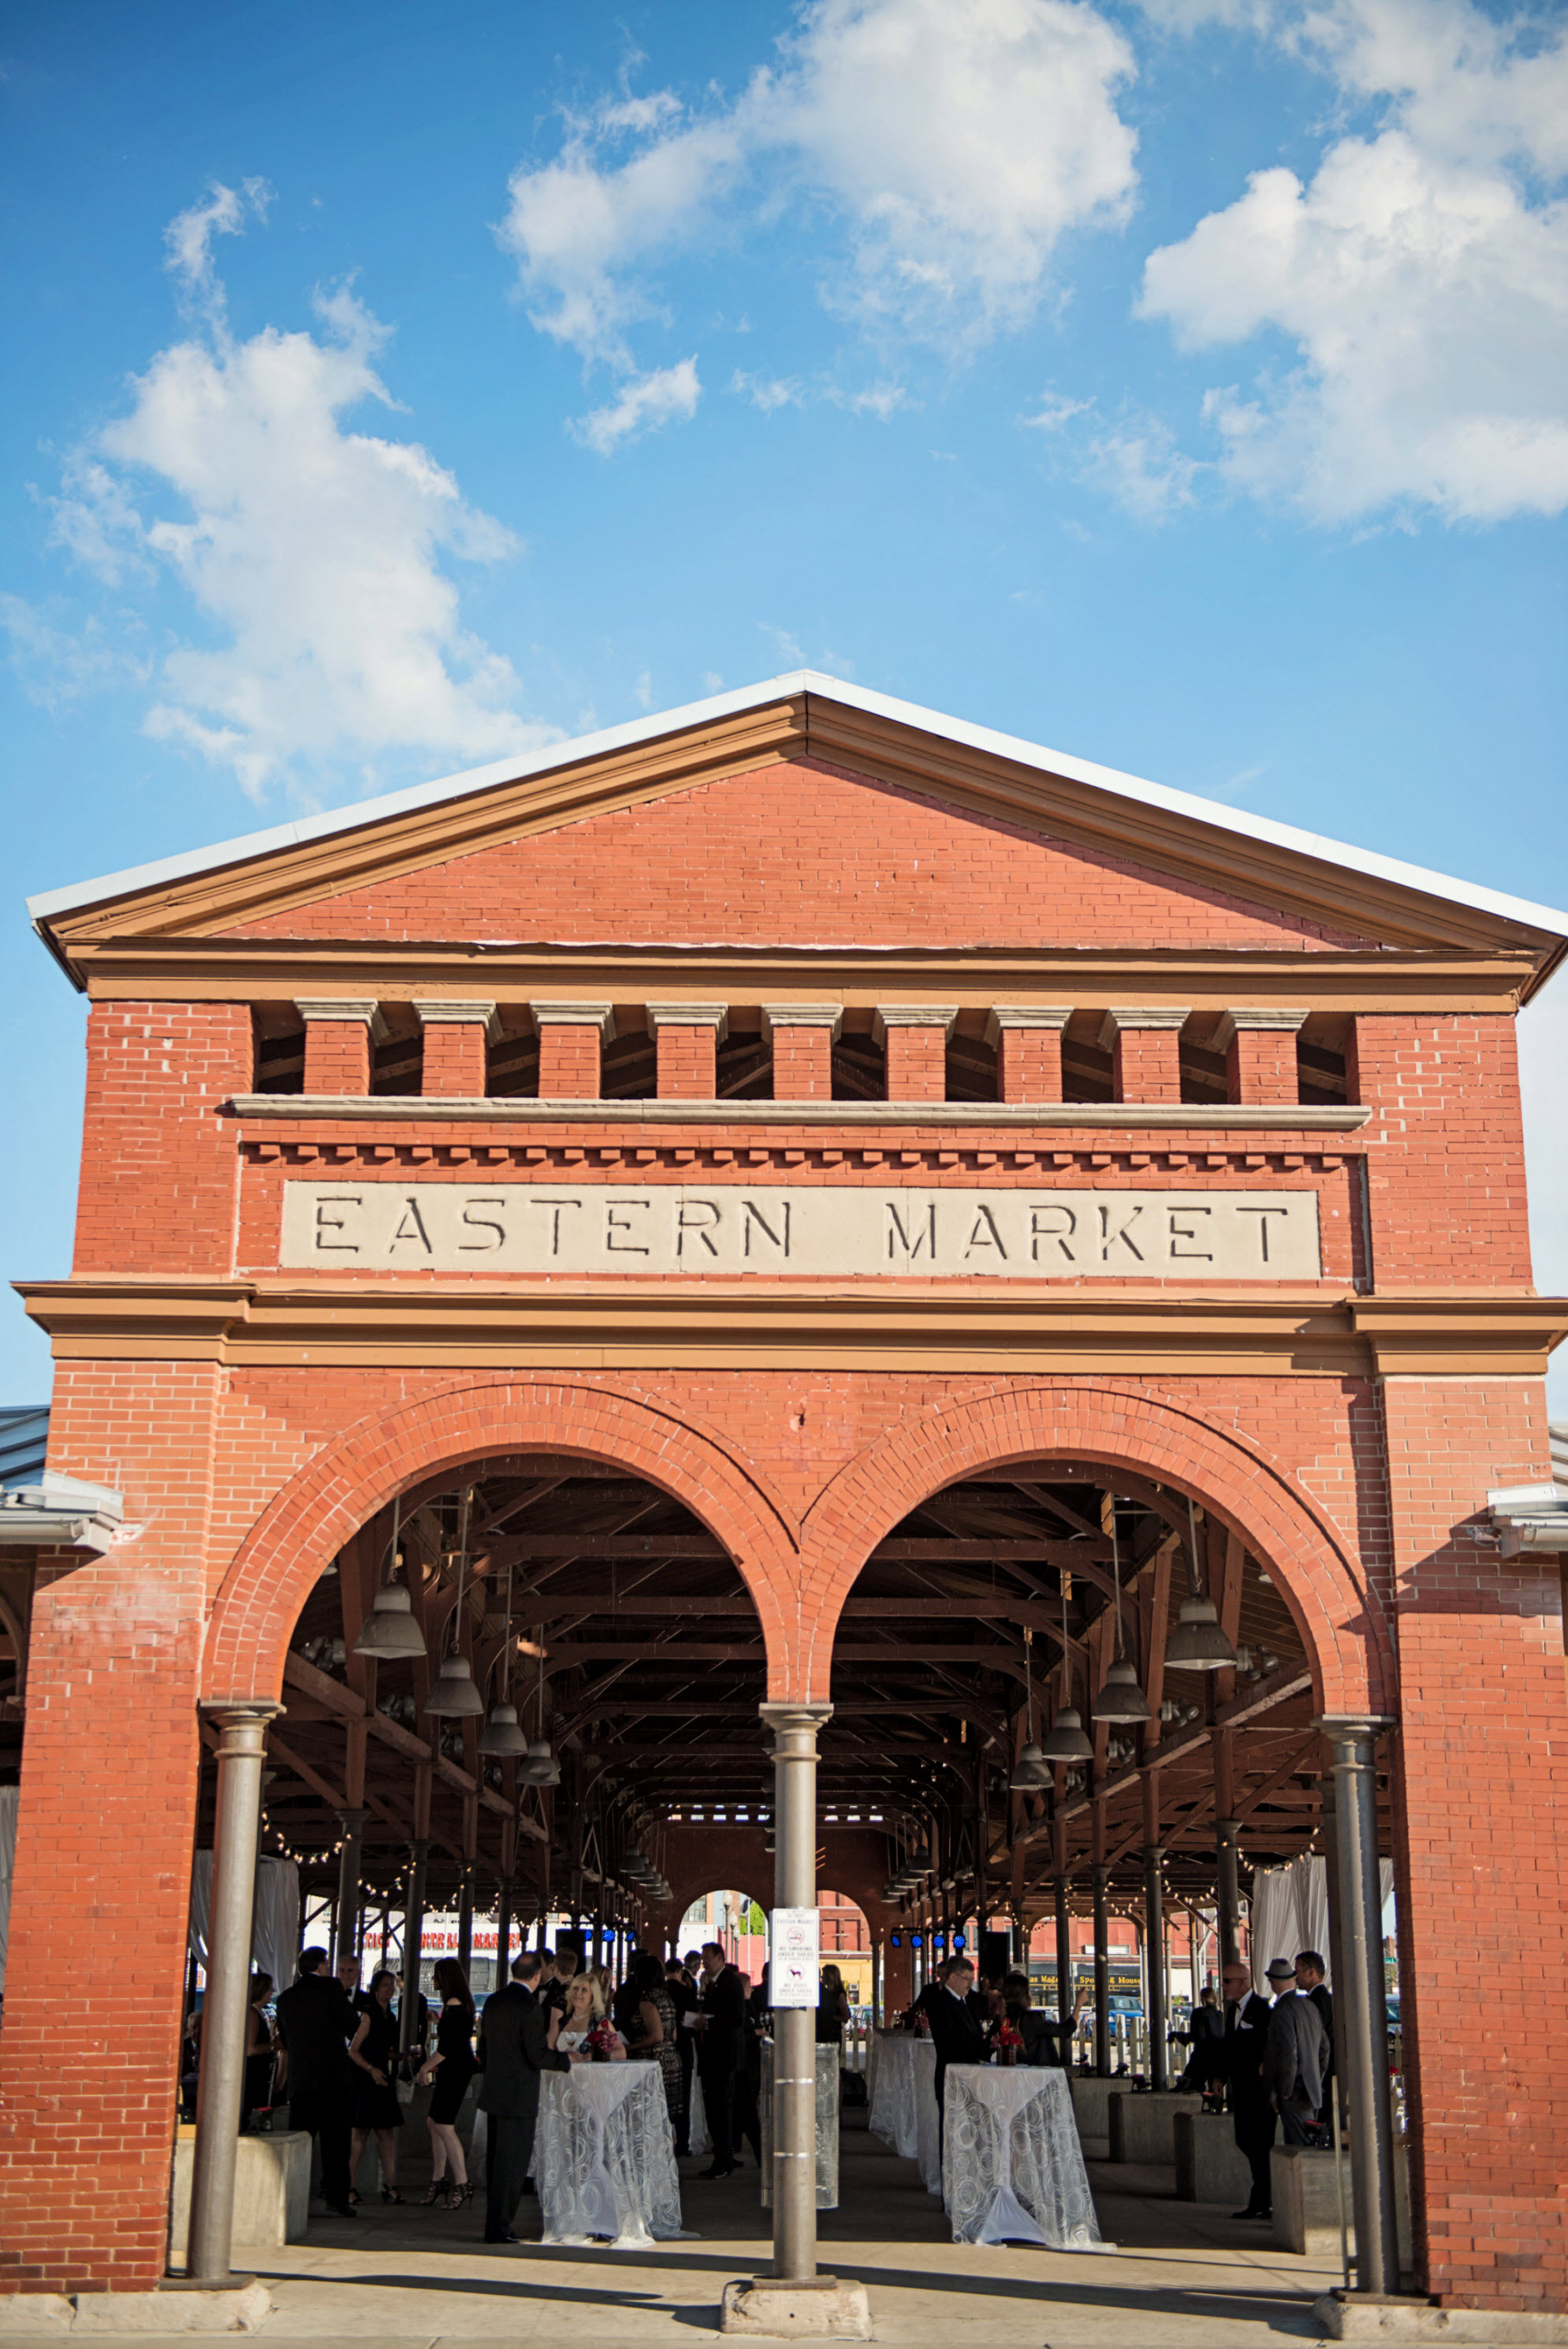 Eastern Market entrance